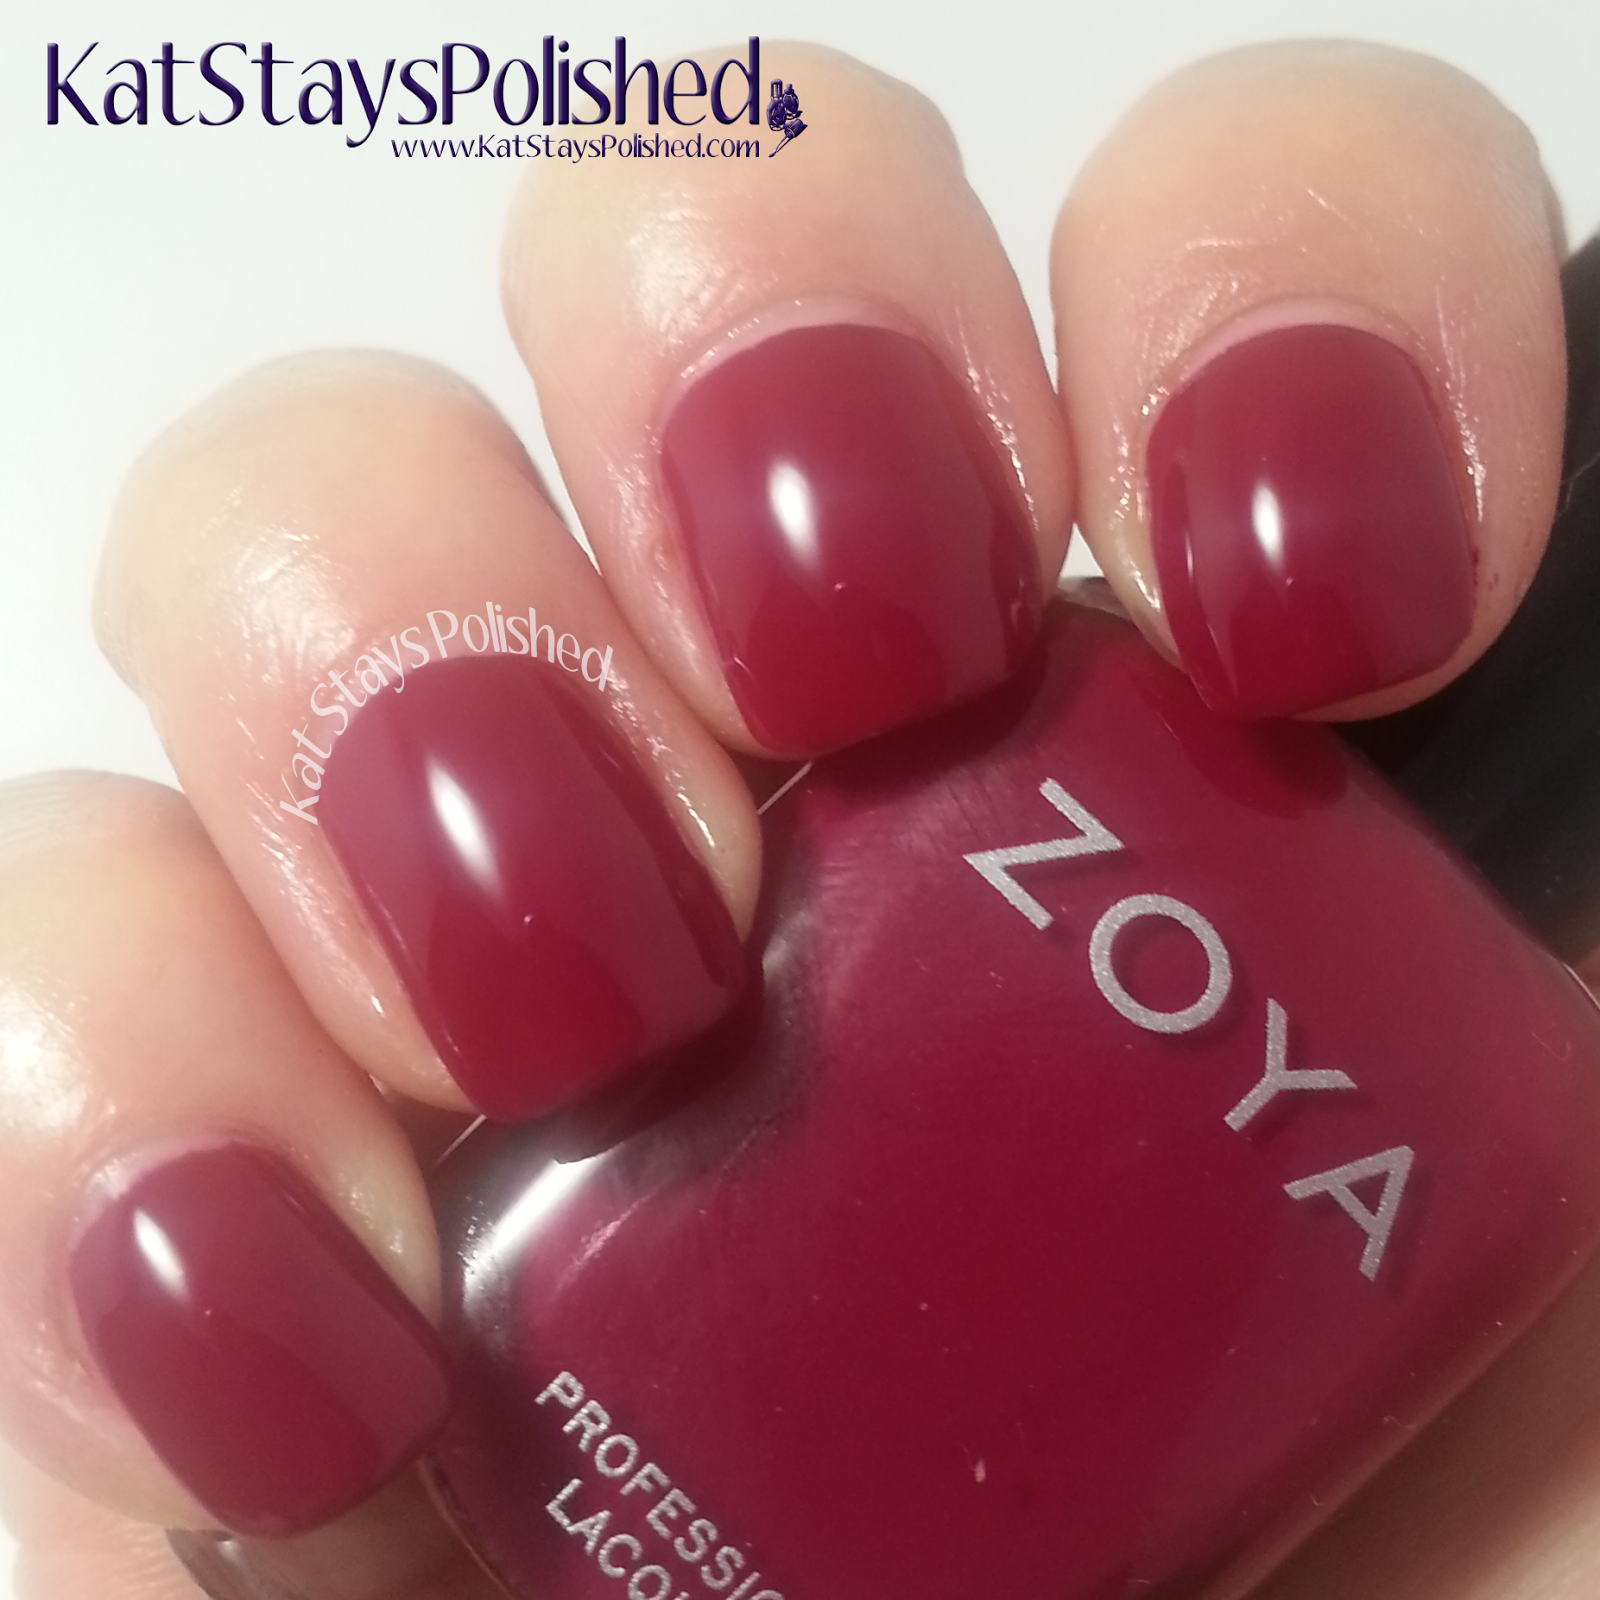 Zoya Entice 2014 - Veronica | Kat Stays Polished